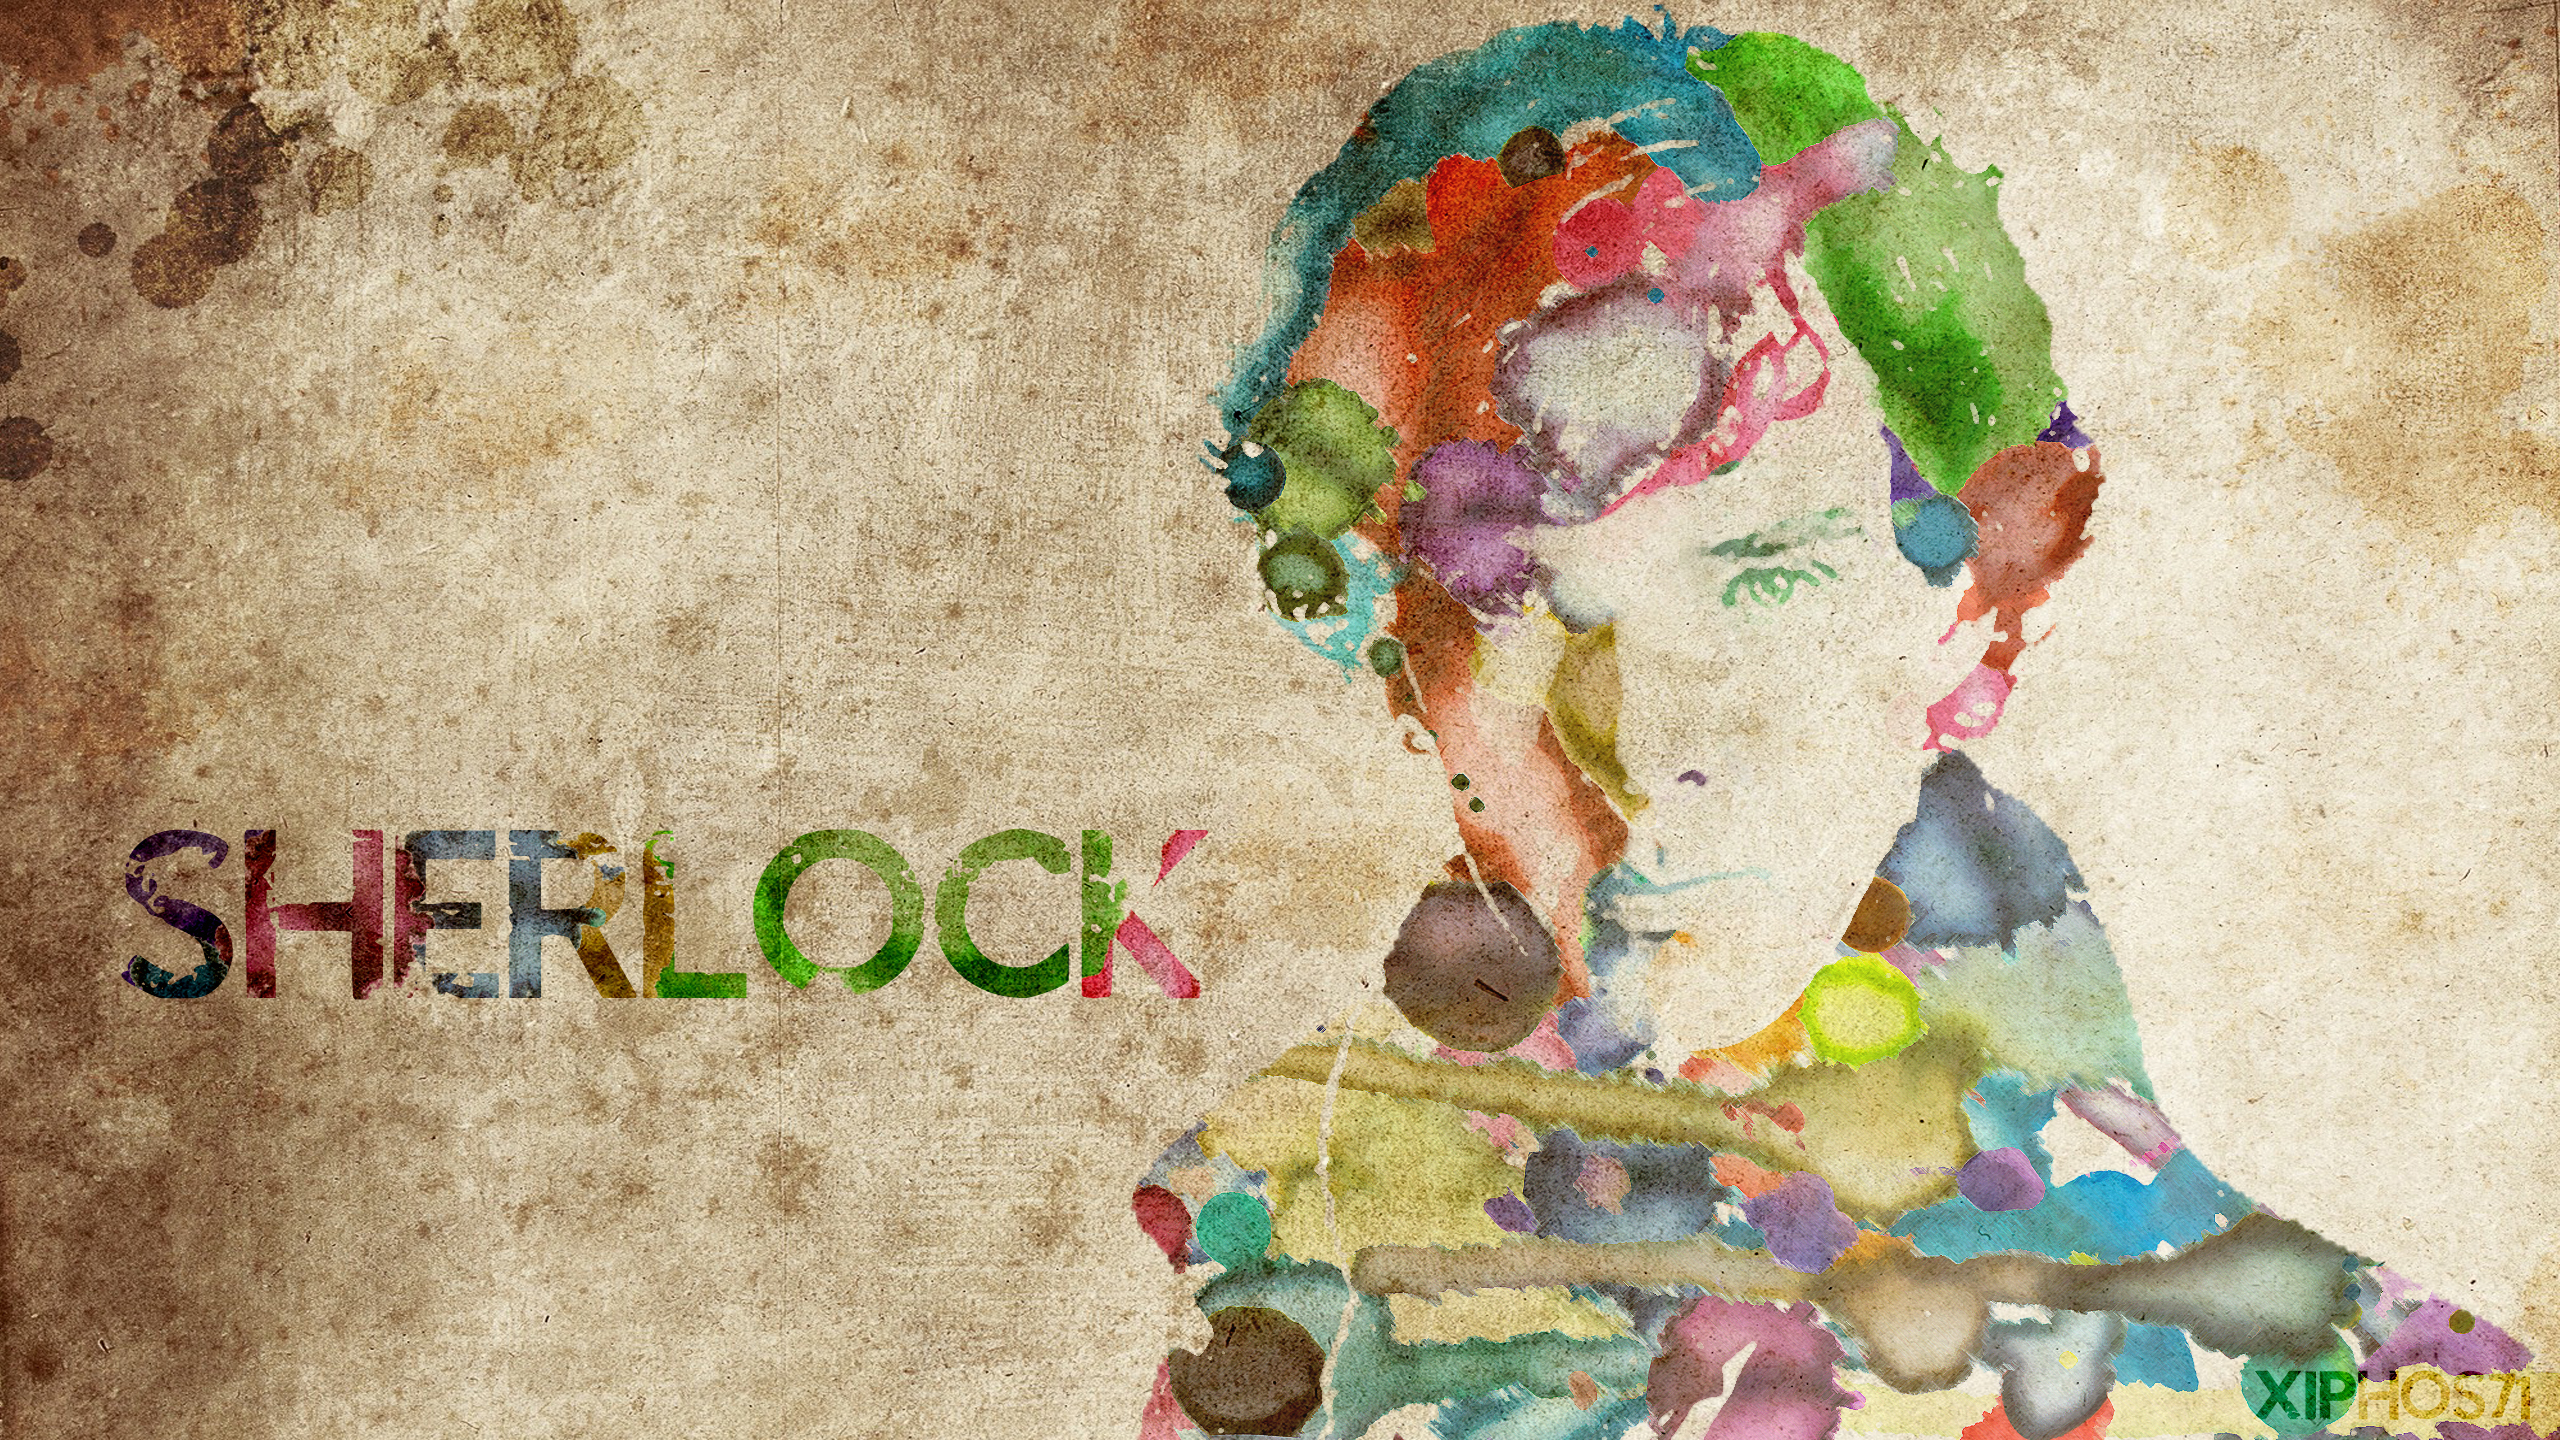 Sherlock Fan Art Wallpaper Sherlock Watercolor By Xiphos Dzbvj